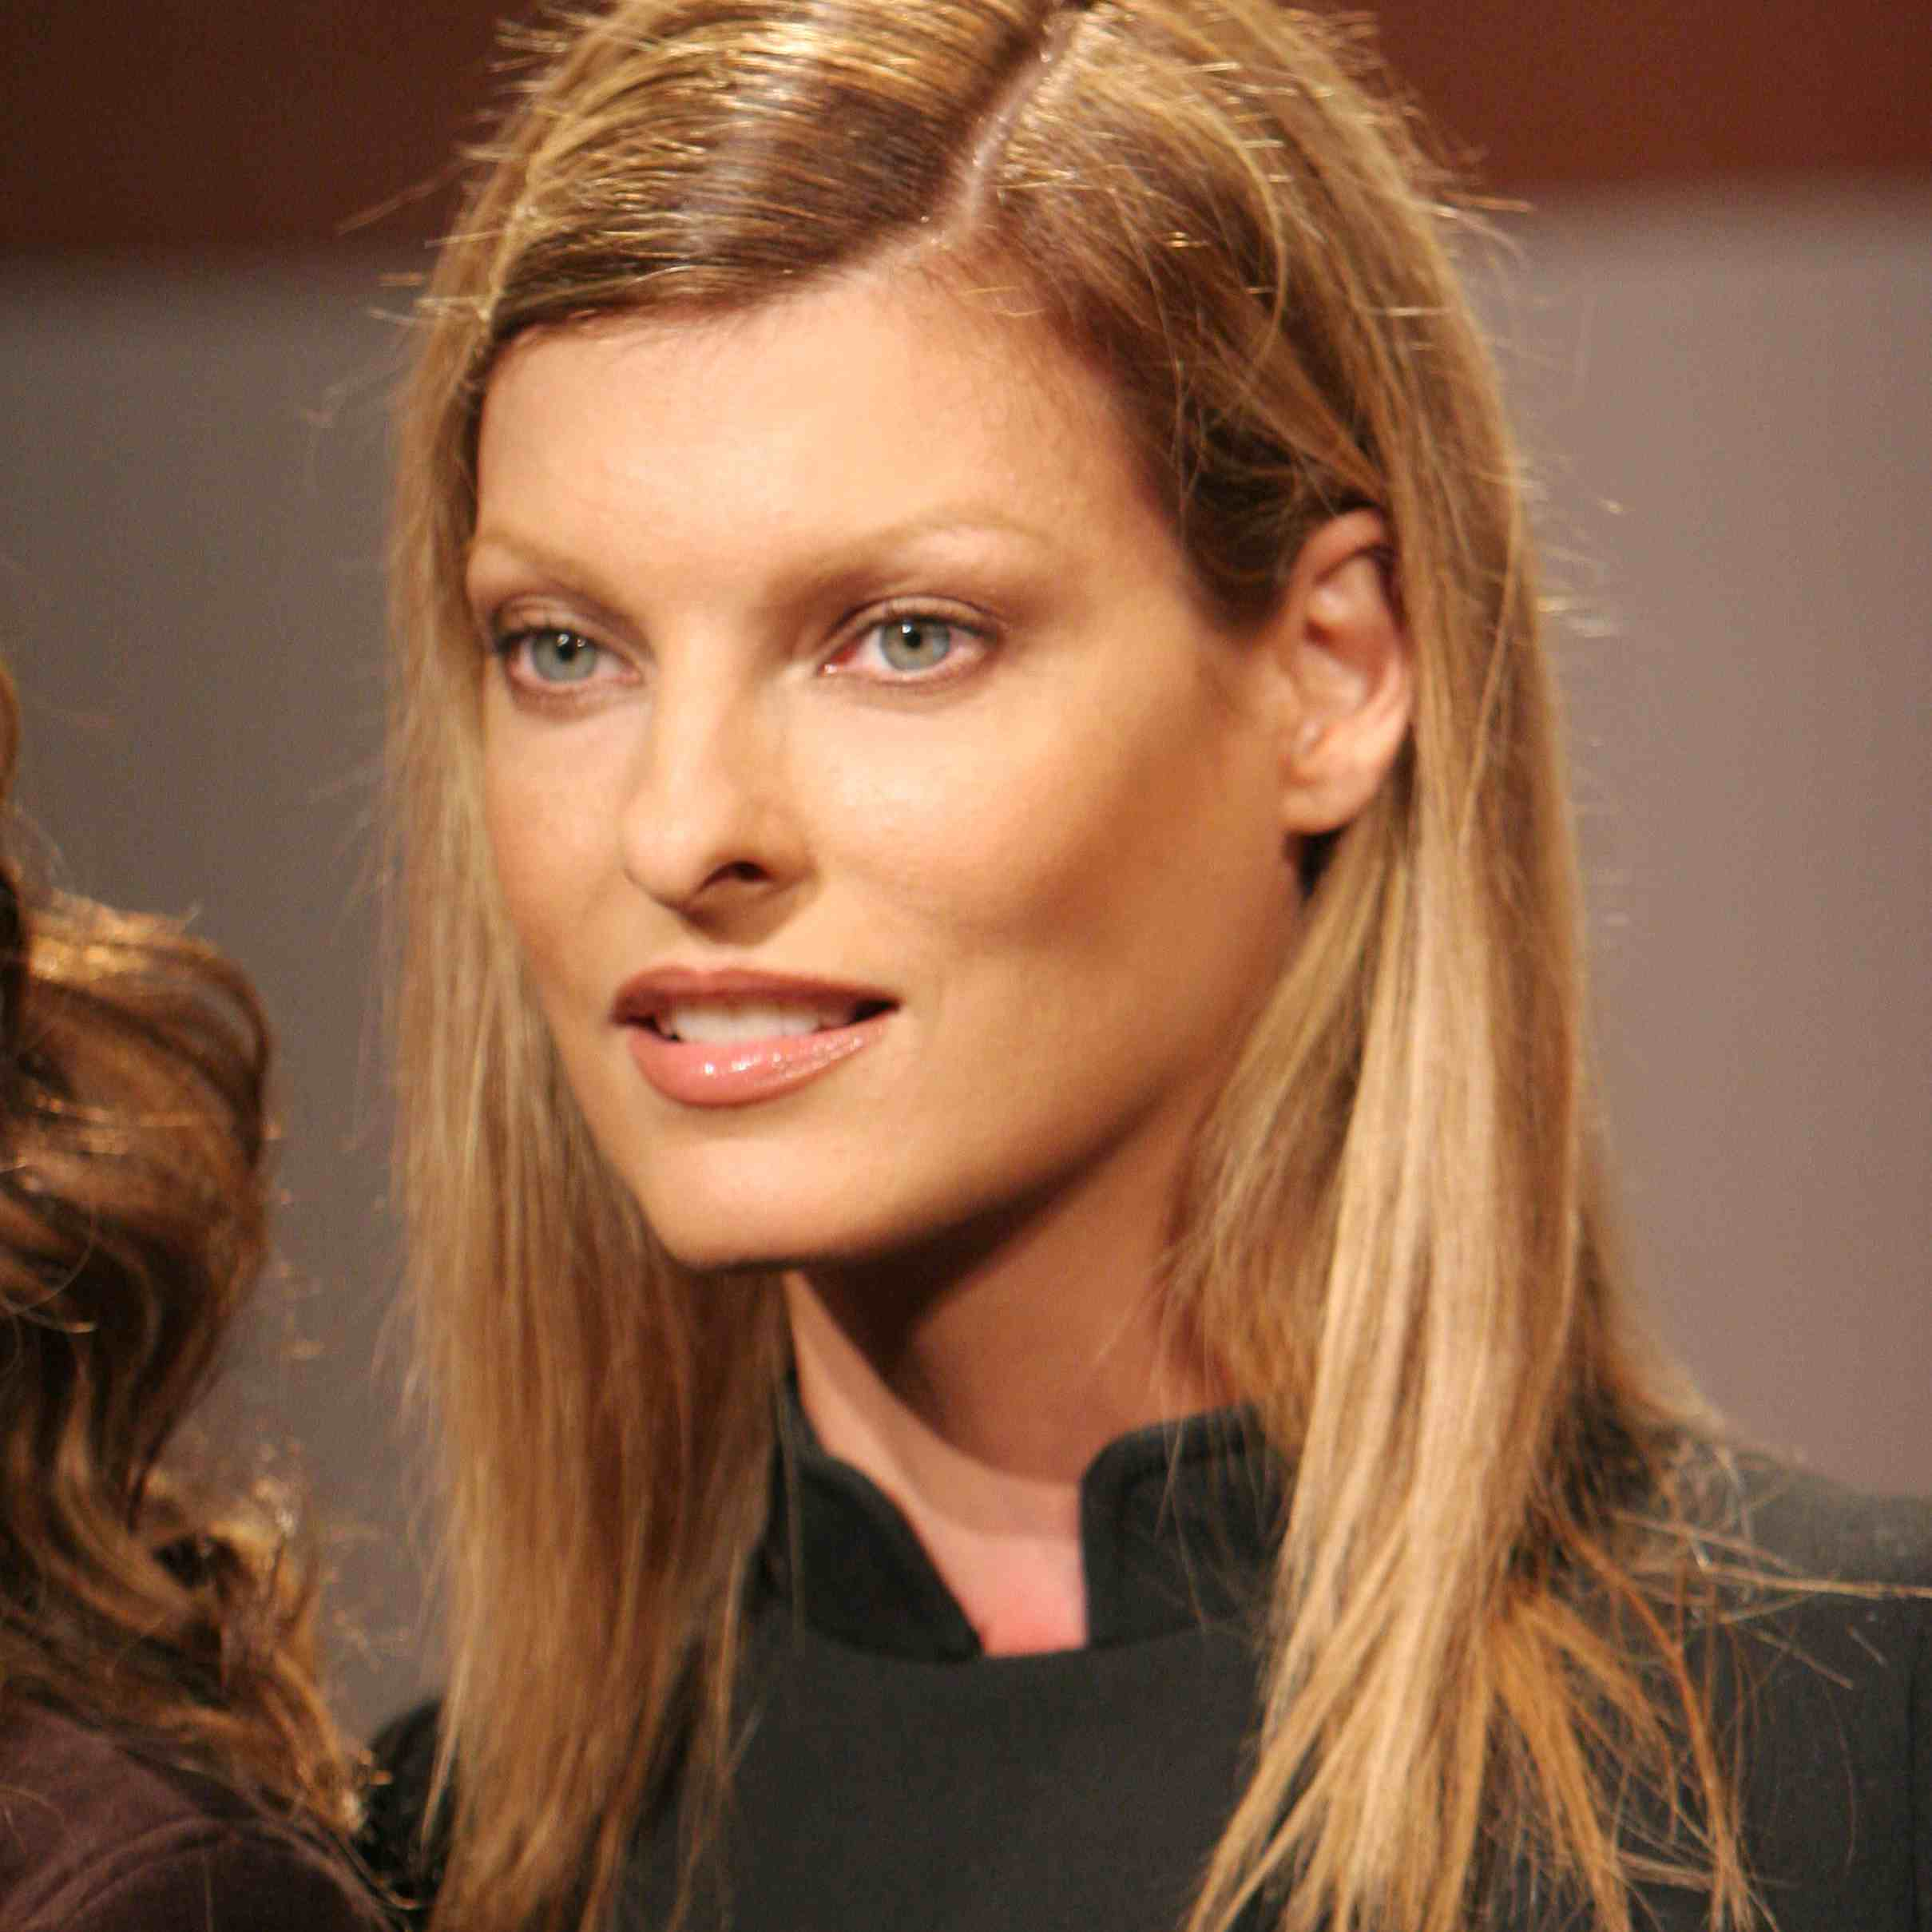 Linda Evangelista during Olympus Fashion Week Spring 2006 - 'Fashion For Relief' Press Conference at Bryant Park in New York City, New York, United States.